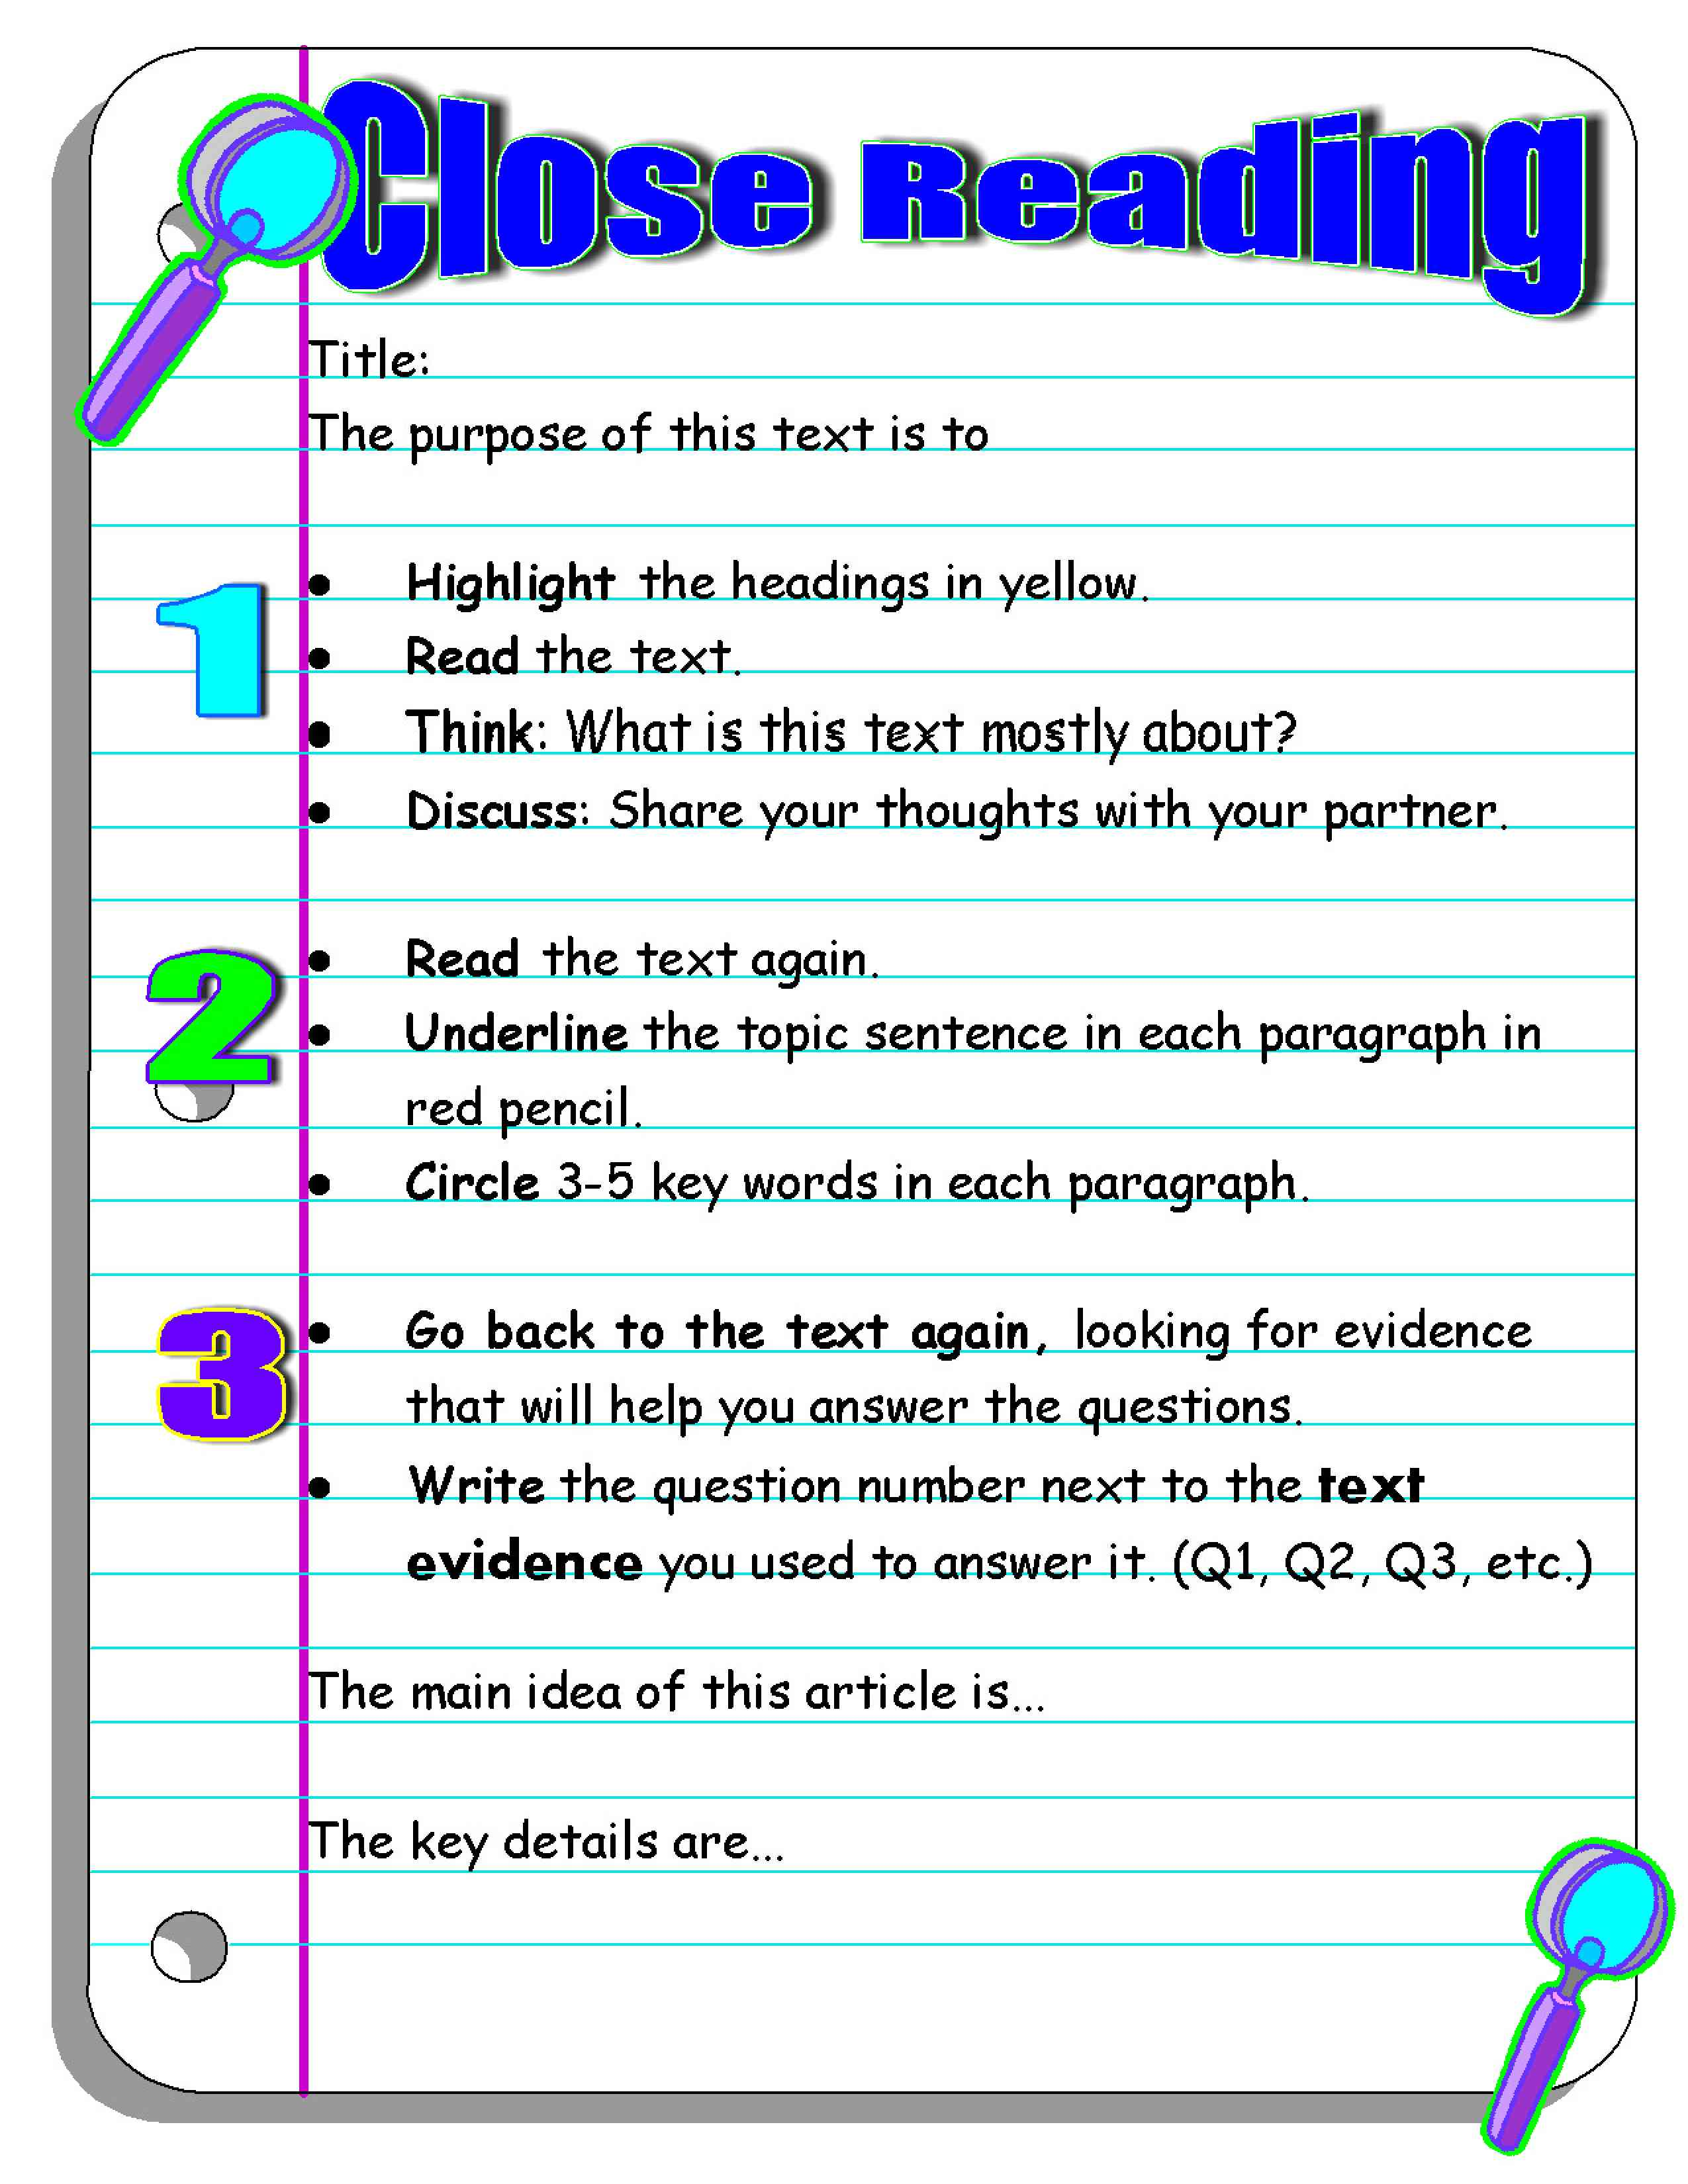 005 Essay Example What Is The Main Idea Of Reads I Pencil Close Reading Organizer Wonderful Full